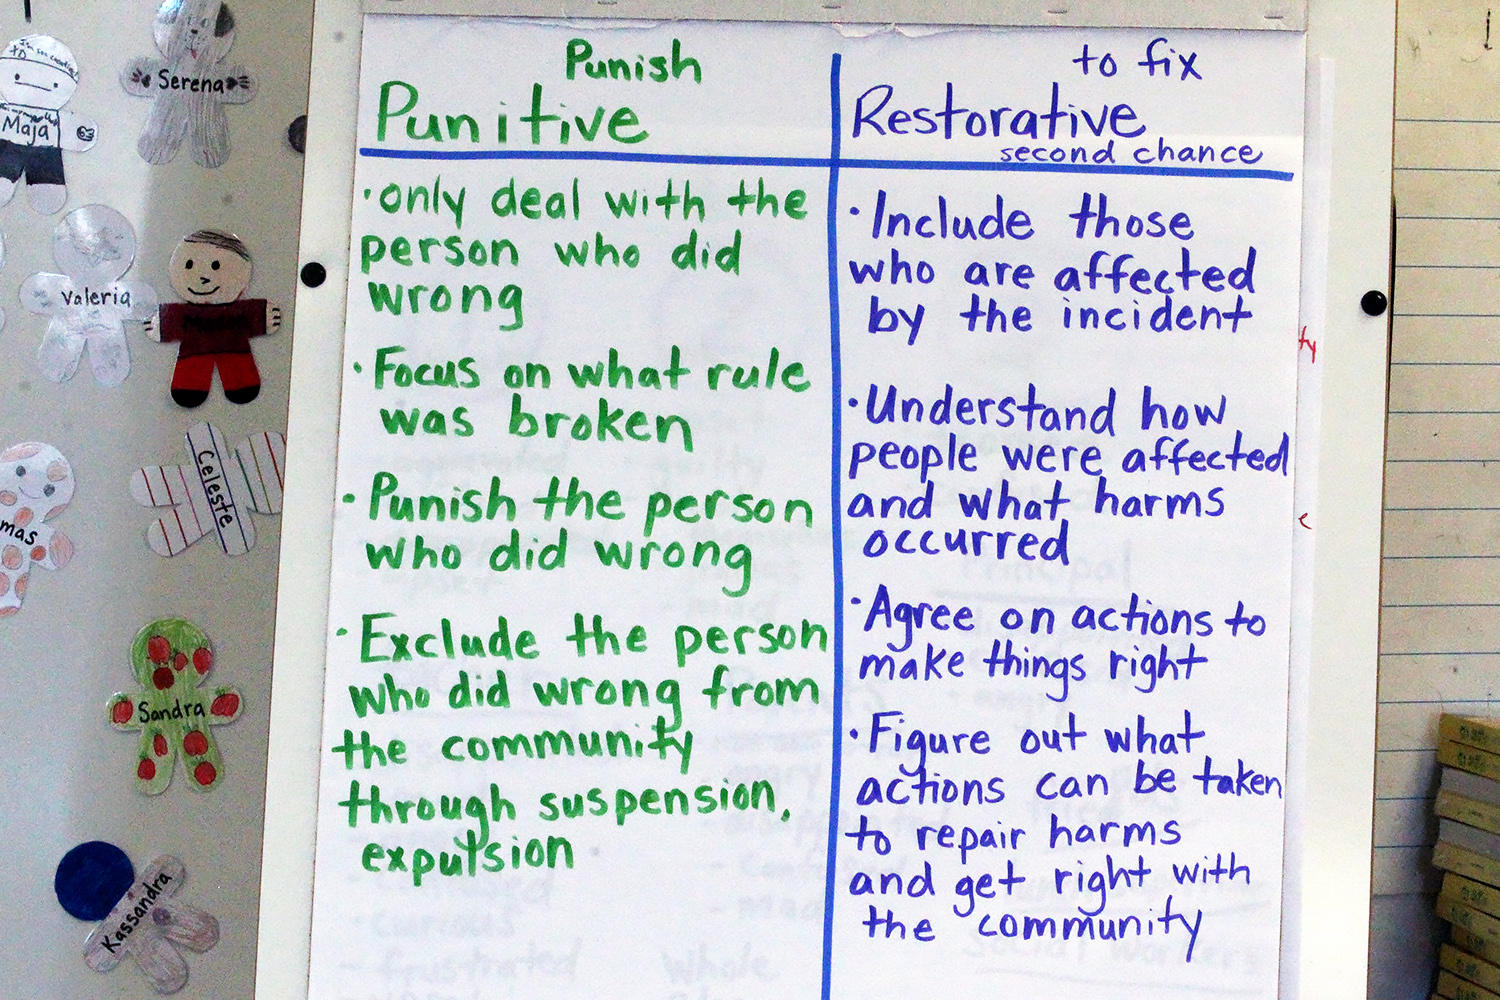 The differences between punitive and restorative approaches.